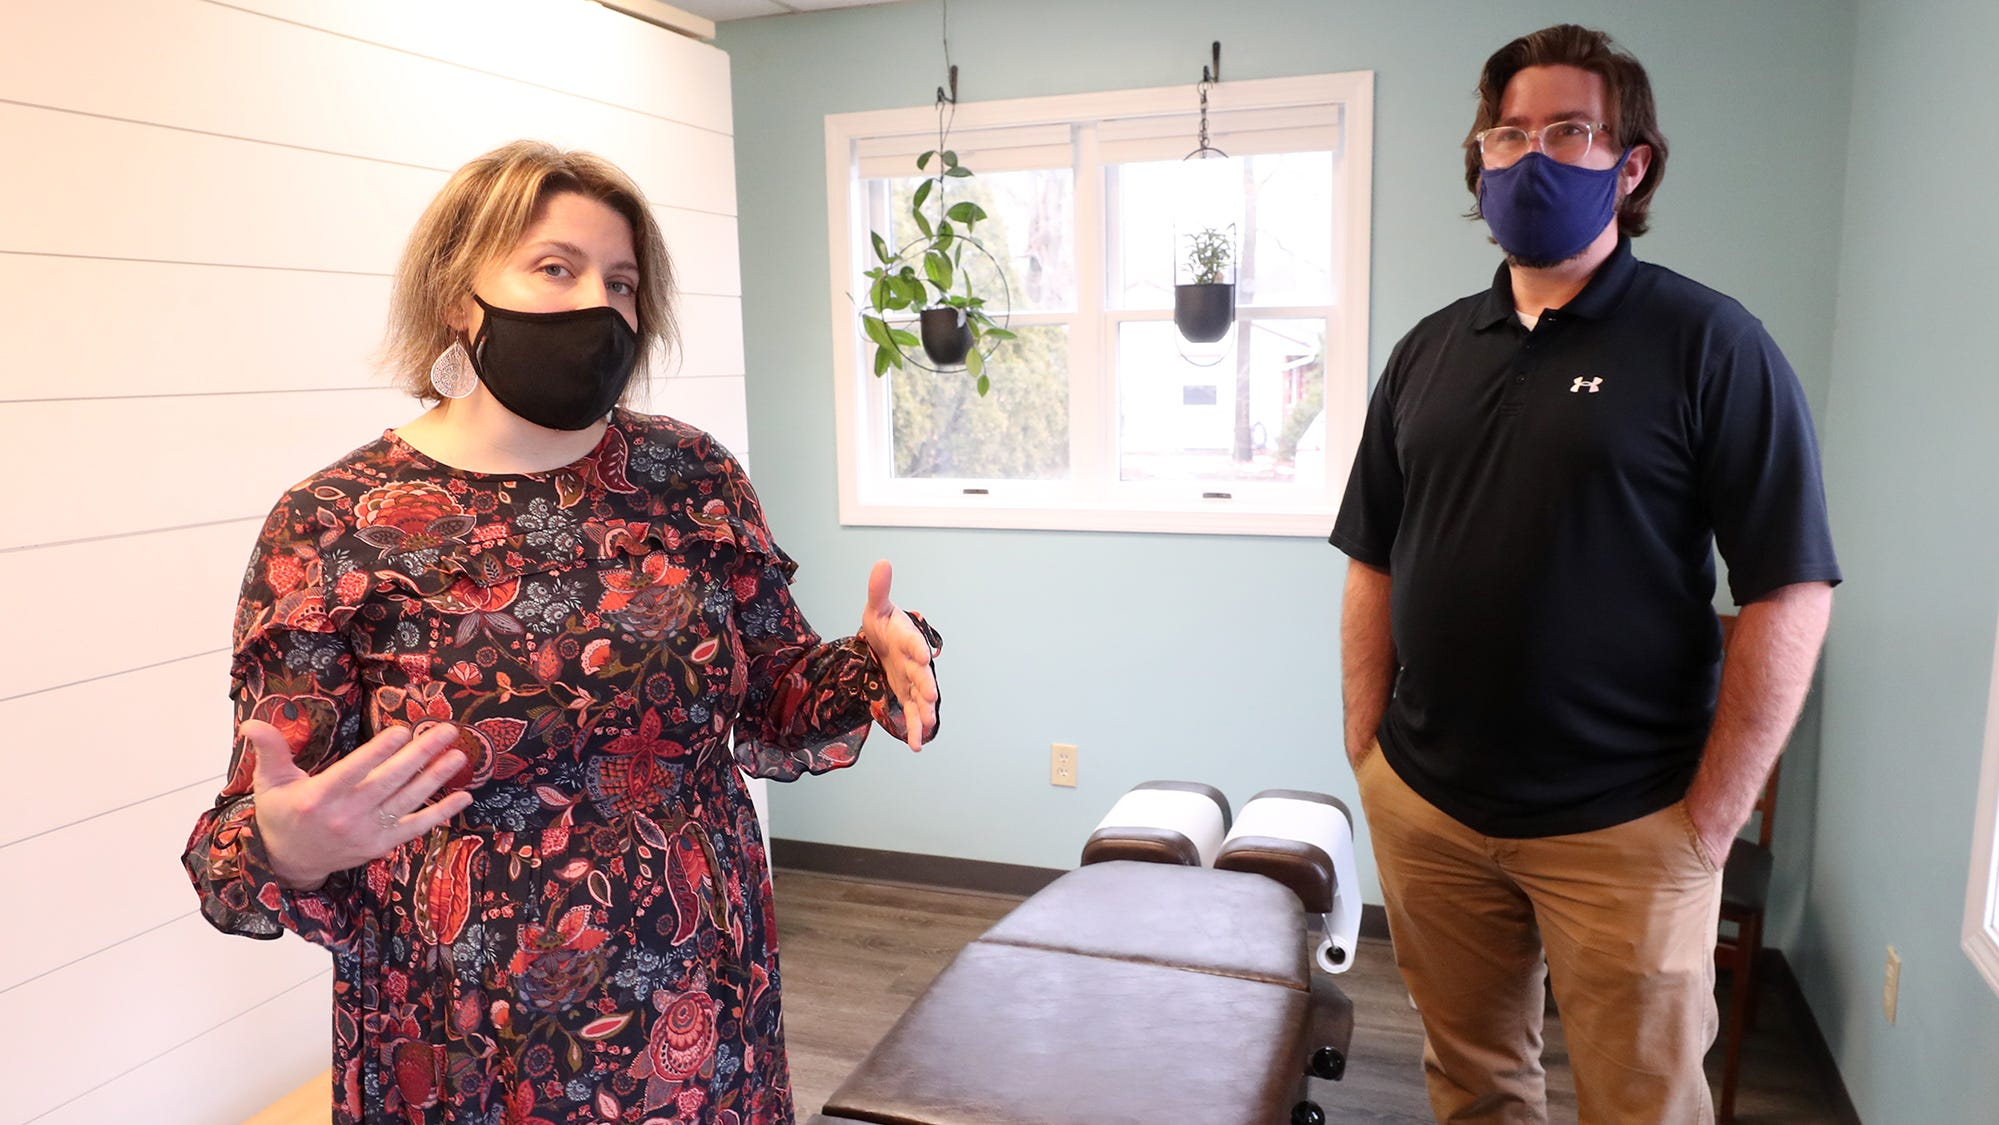 Stow chiropractors start new business in pandemic